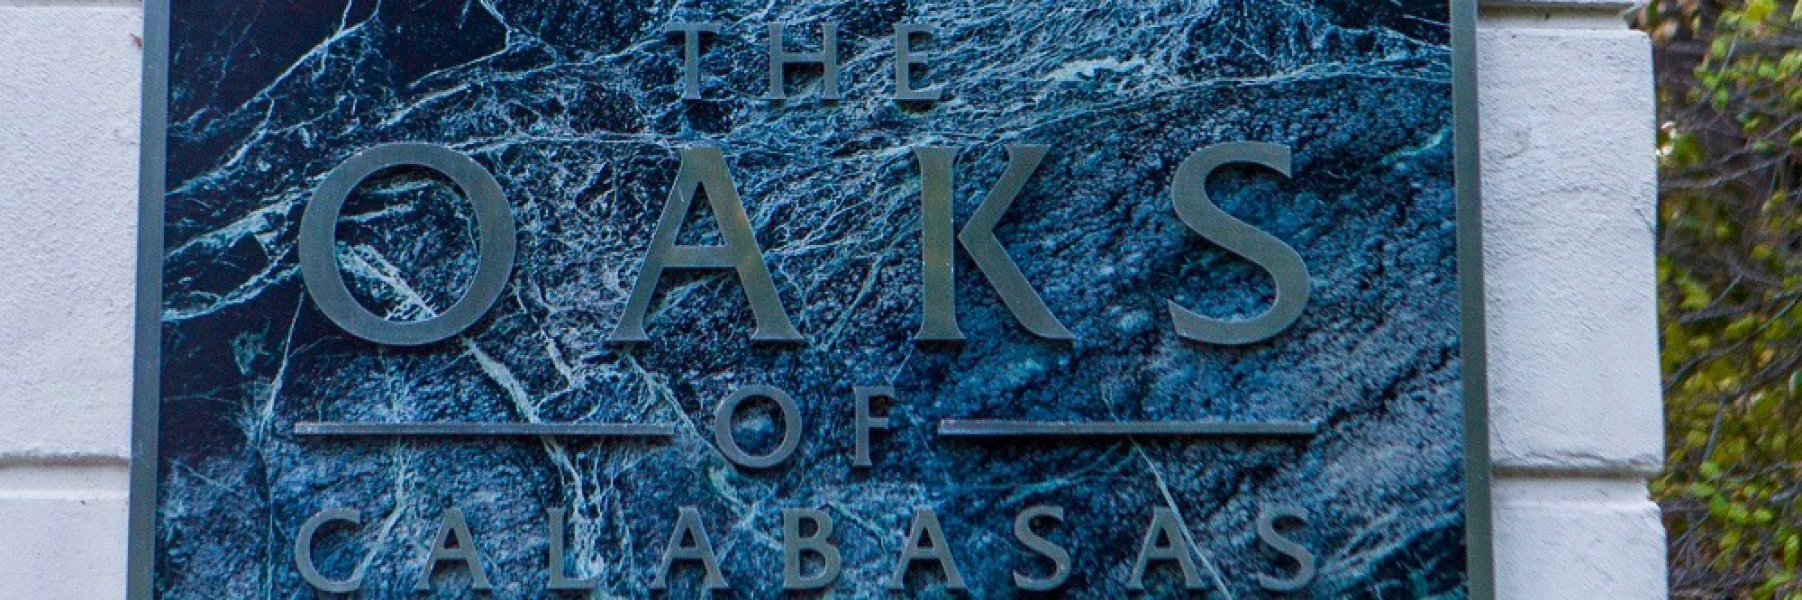 The Oaks is a community of homes in Calabasas California